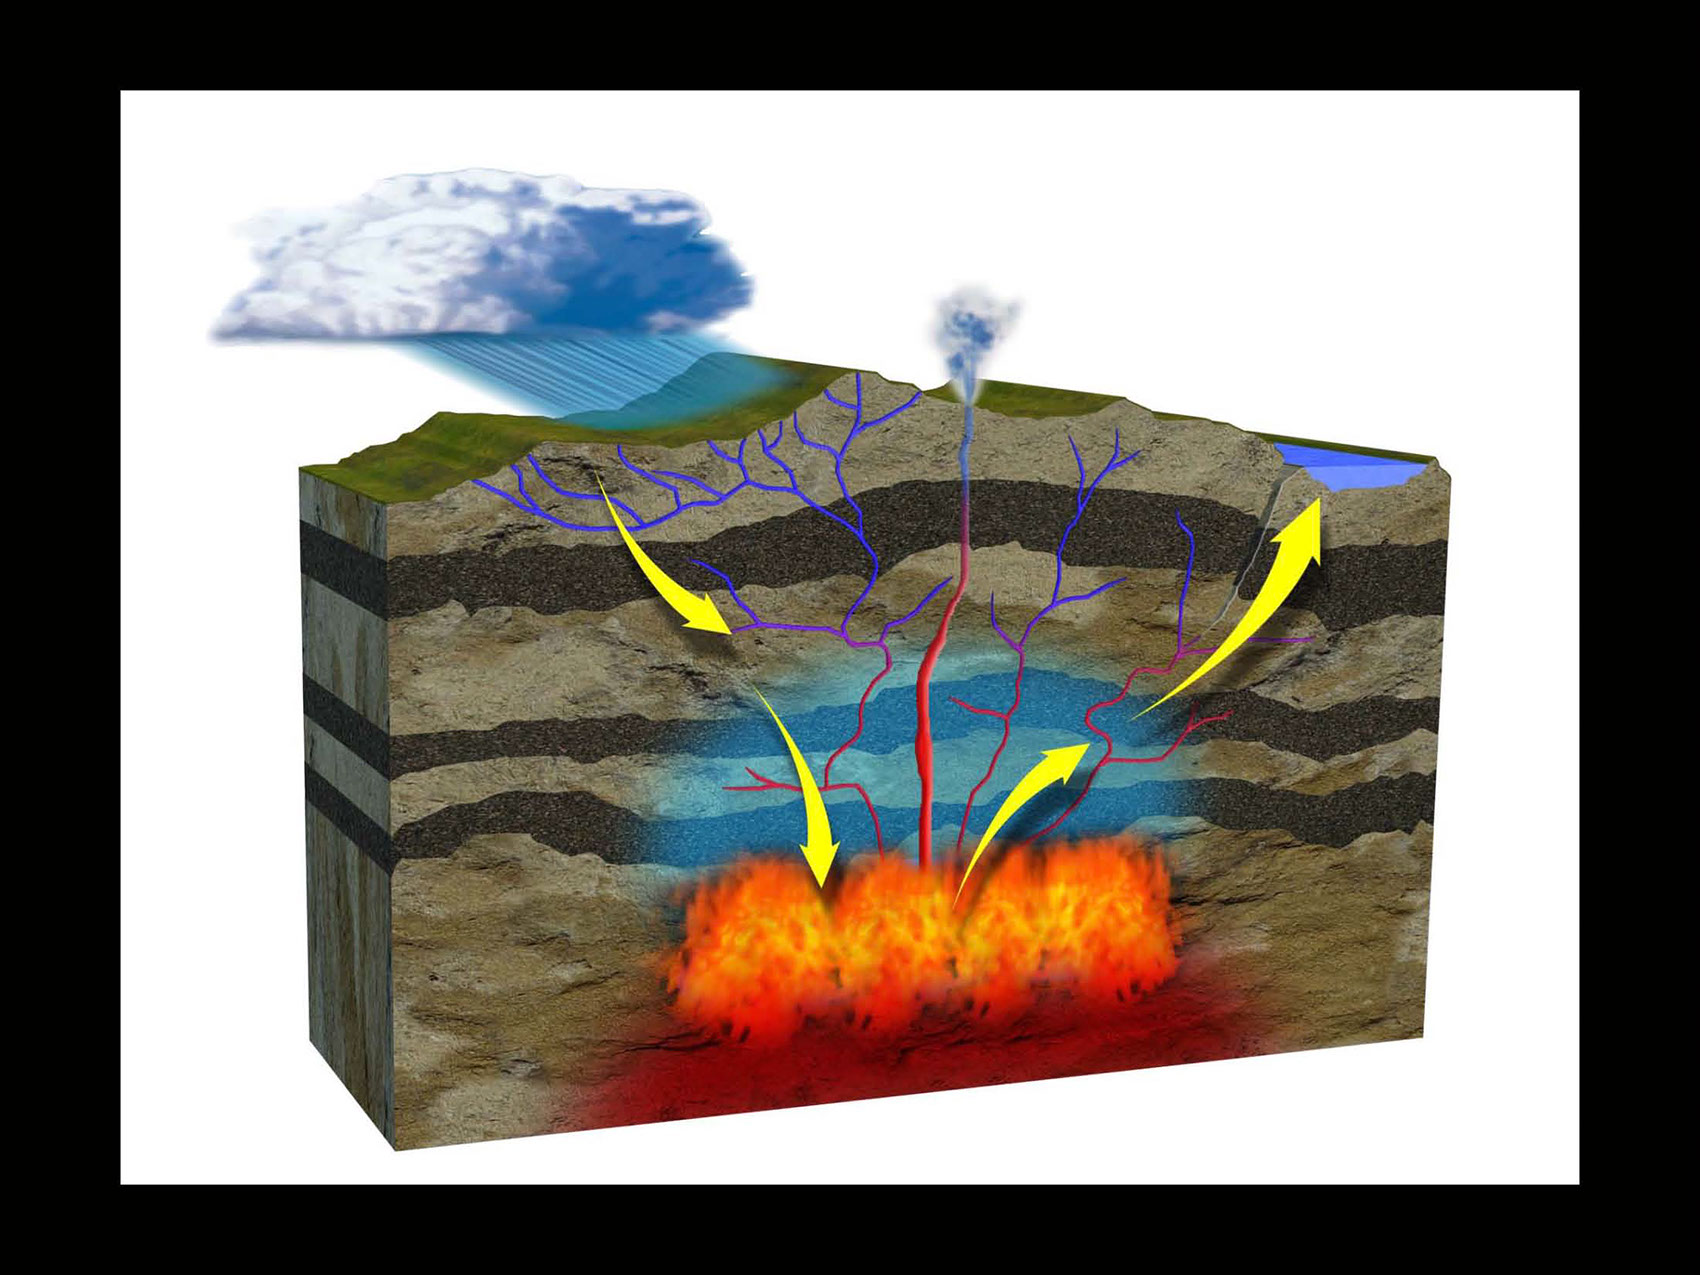 illustration-Technical_Igneous formation of a rock-Matt Zang